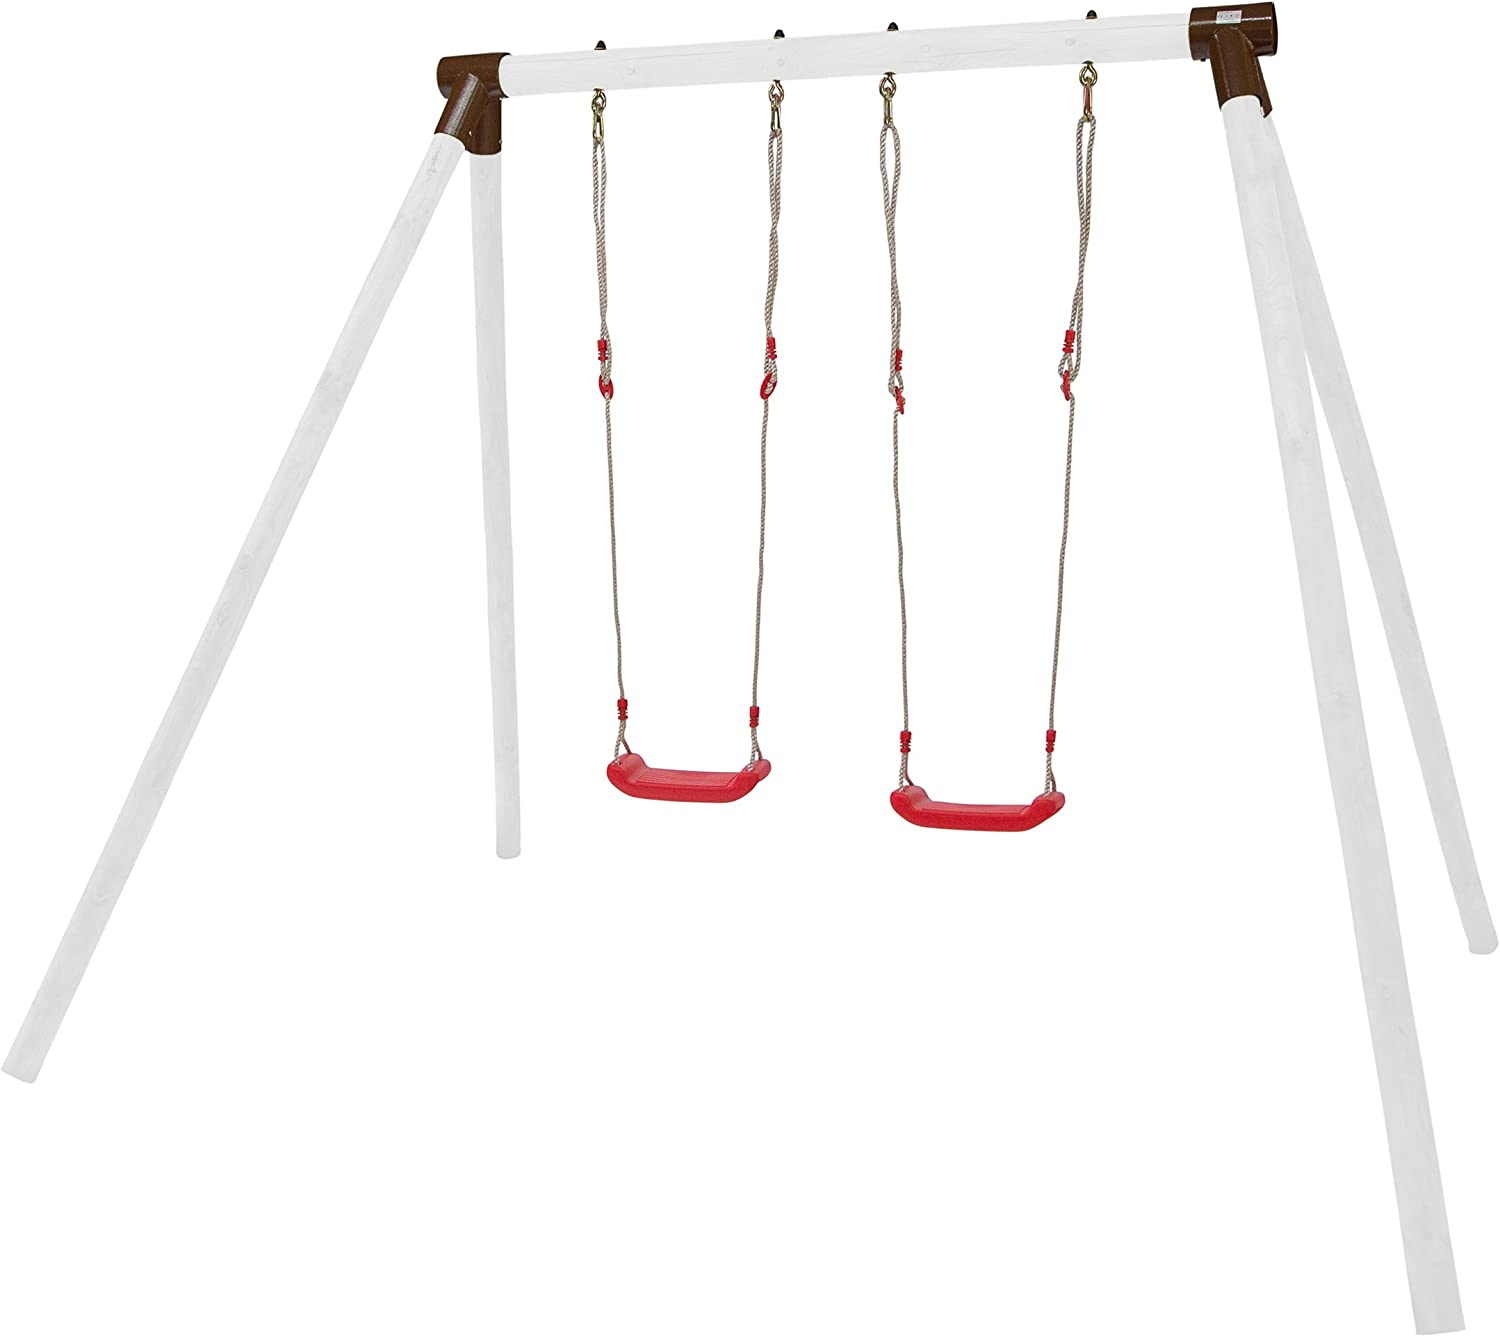 Ultrasport Accessory Set Heidi for Round Wood Double Swing